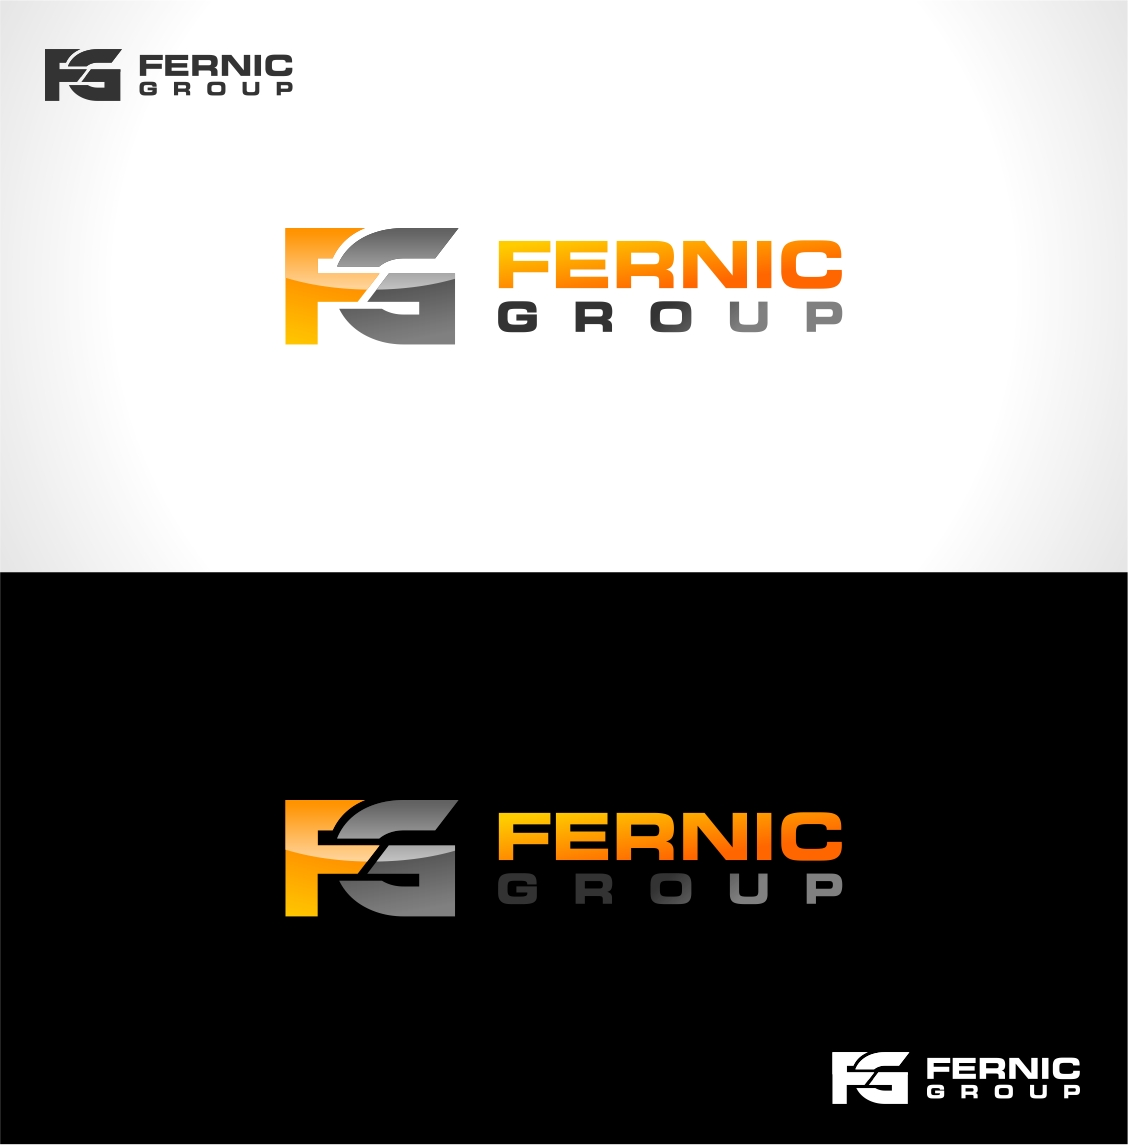 Logo Design by haidu - Entry No. 53 in the Logo Design Contest Artistic Logo Design for Fernic Goup.